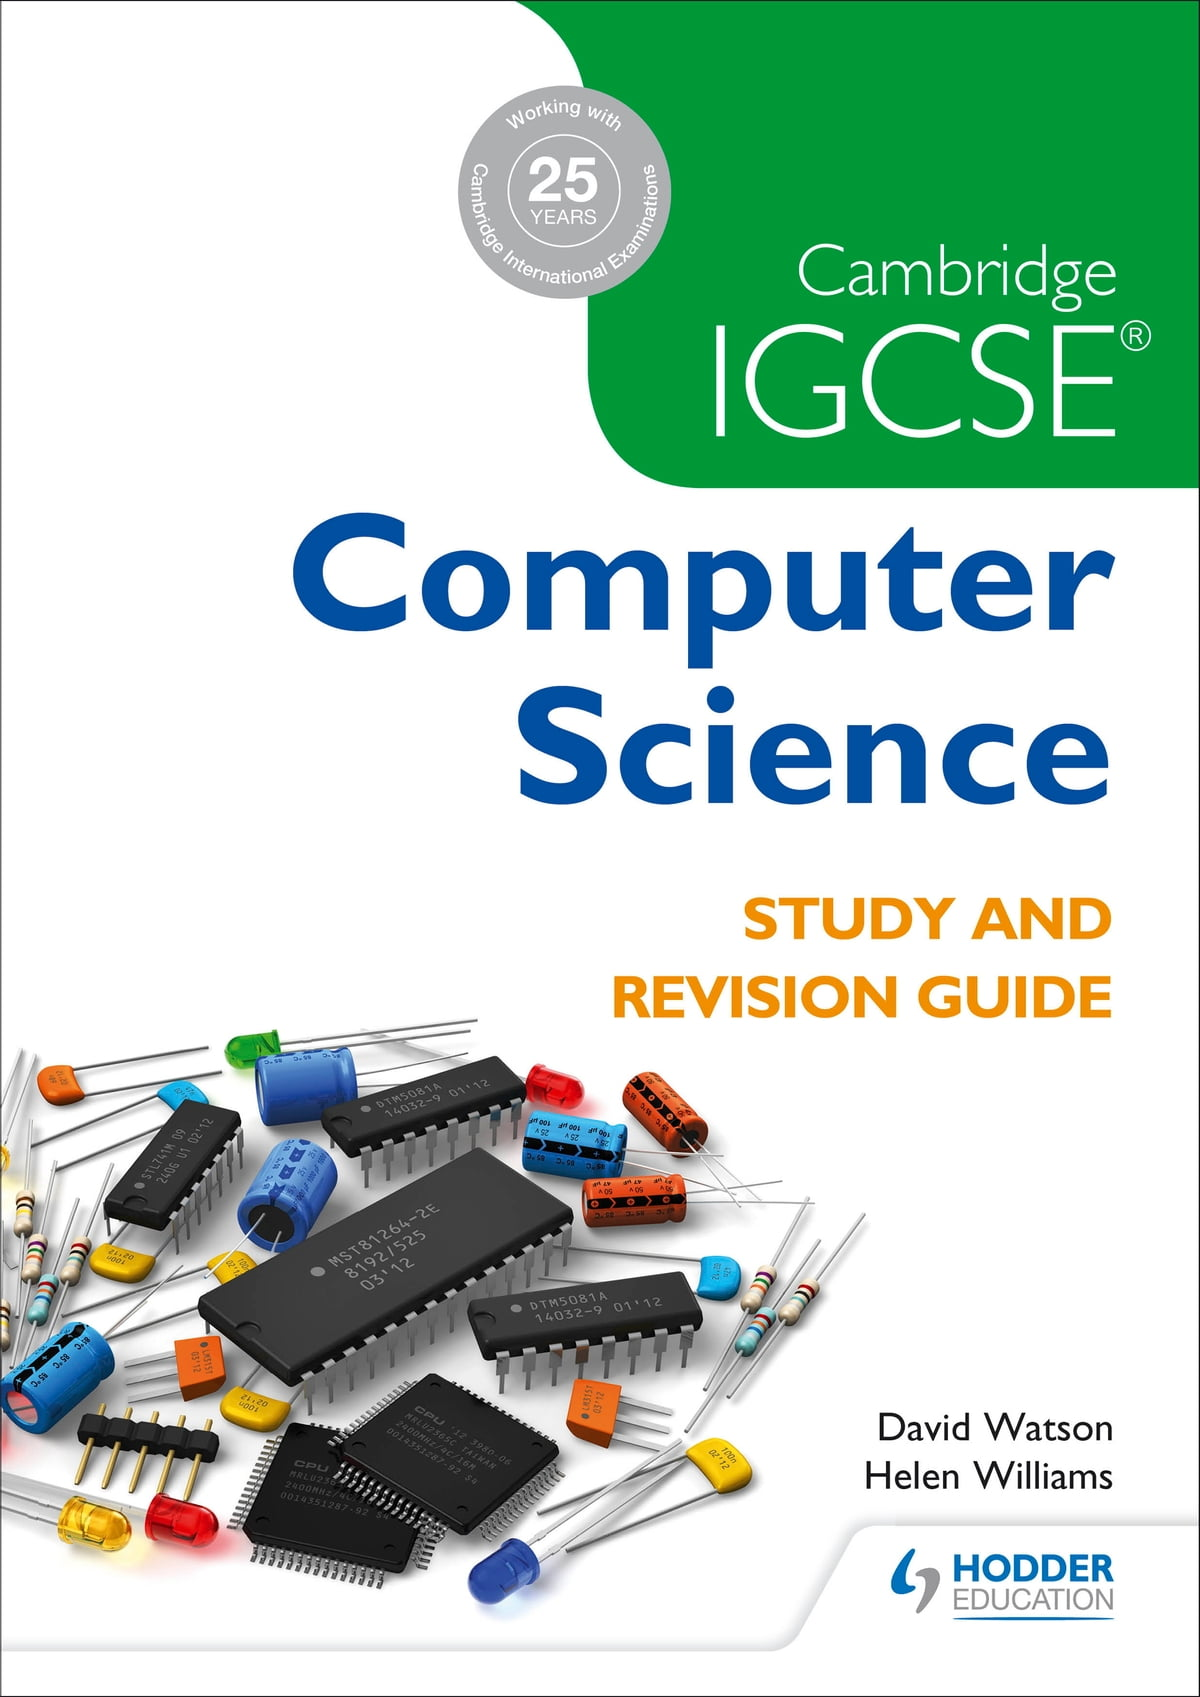 Cambridge IGCSE Computer Science Study and Revision Guide eBook by David  Watson - 9781471868702 | Rakuten Kobo